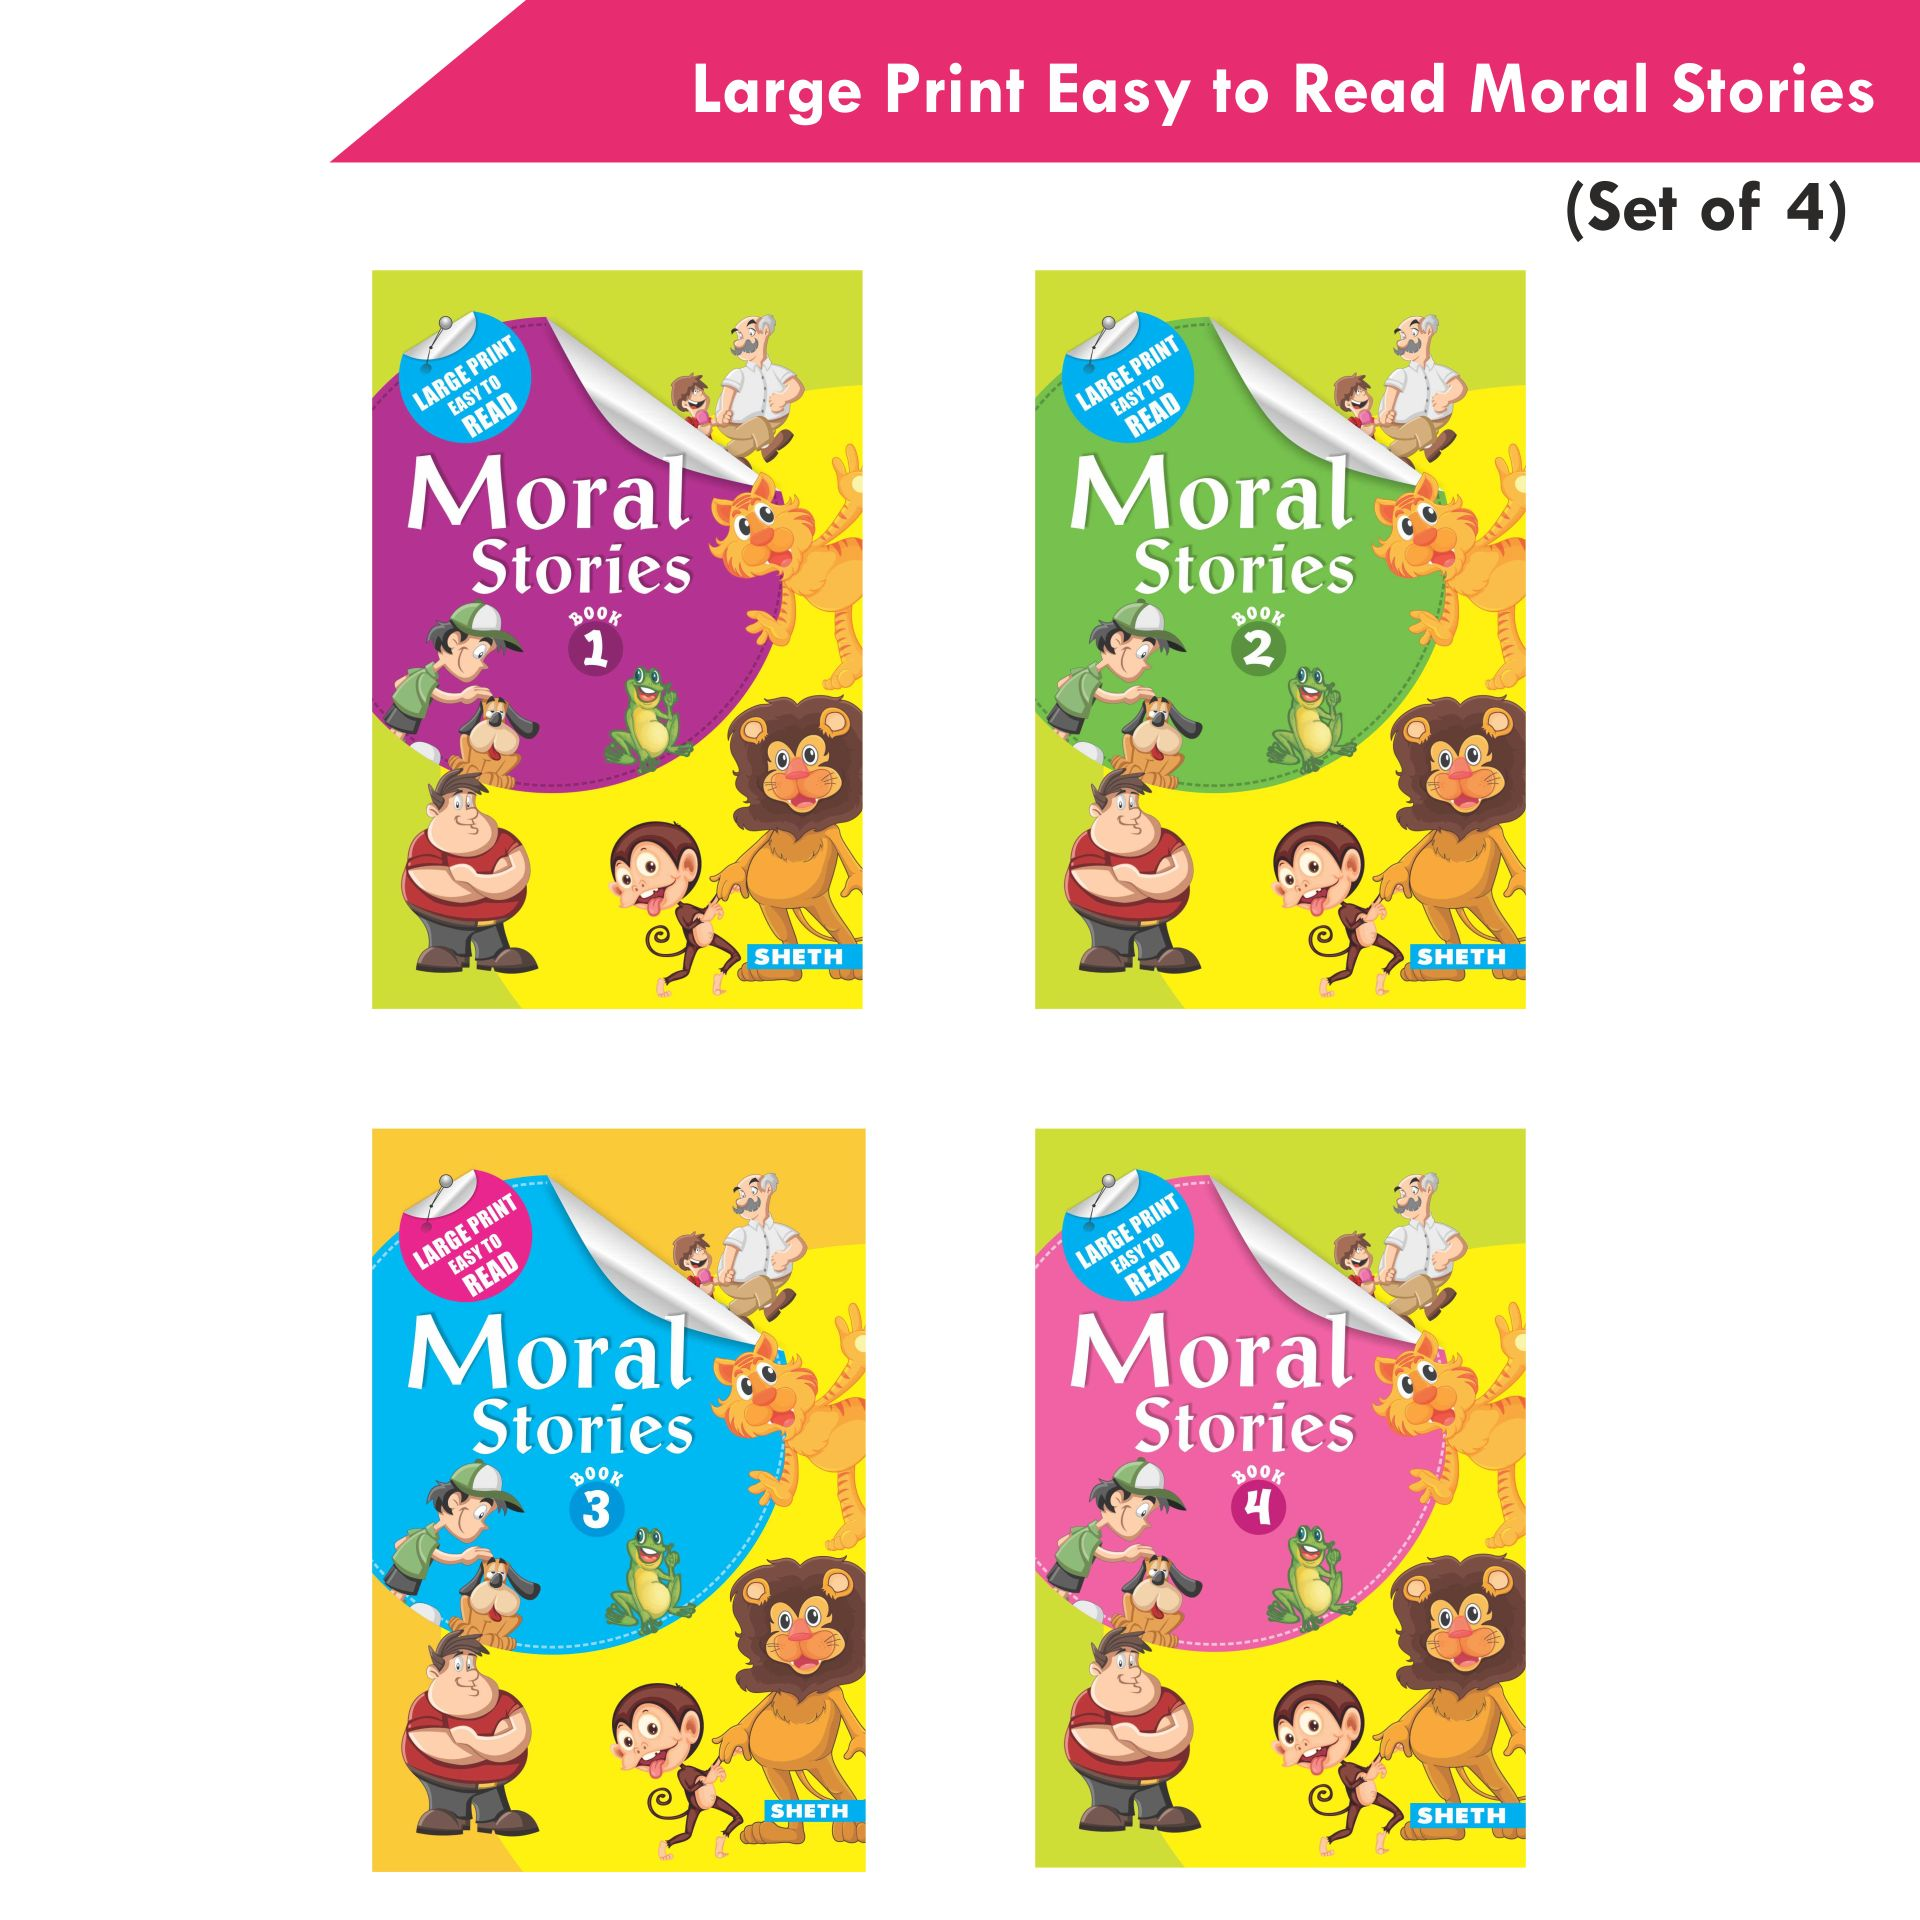 Large Print Easy to Read Moral Stories Set of 4 1